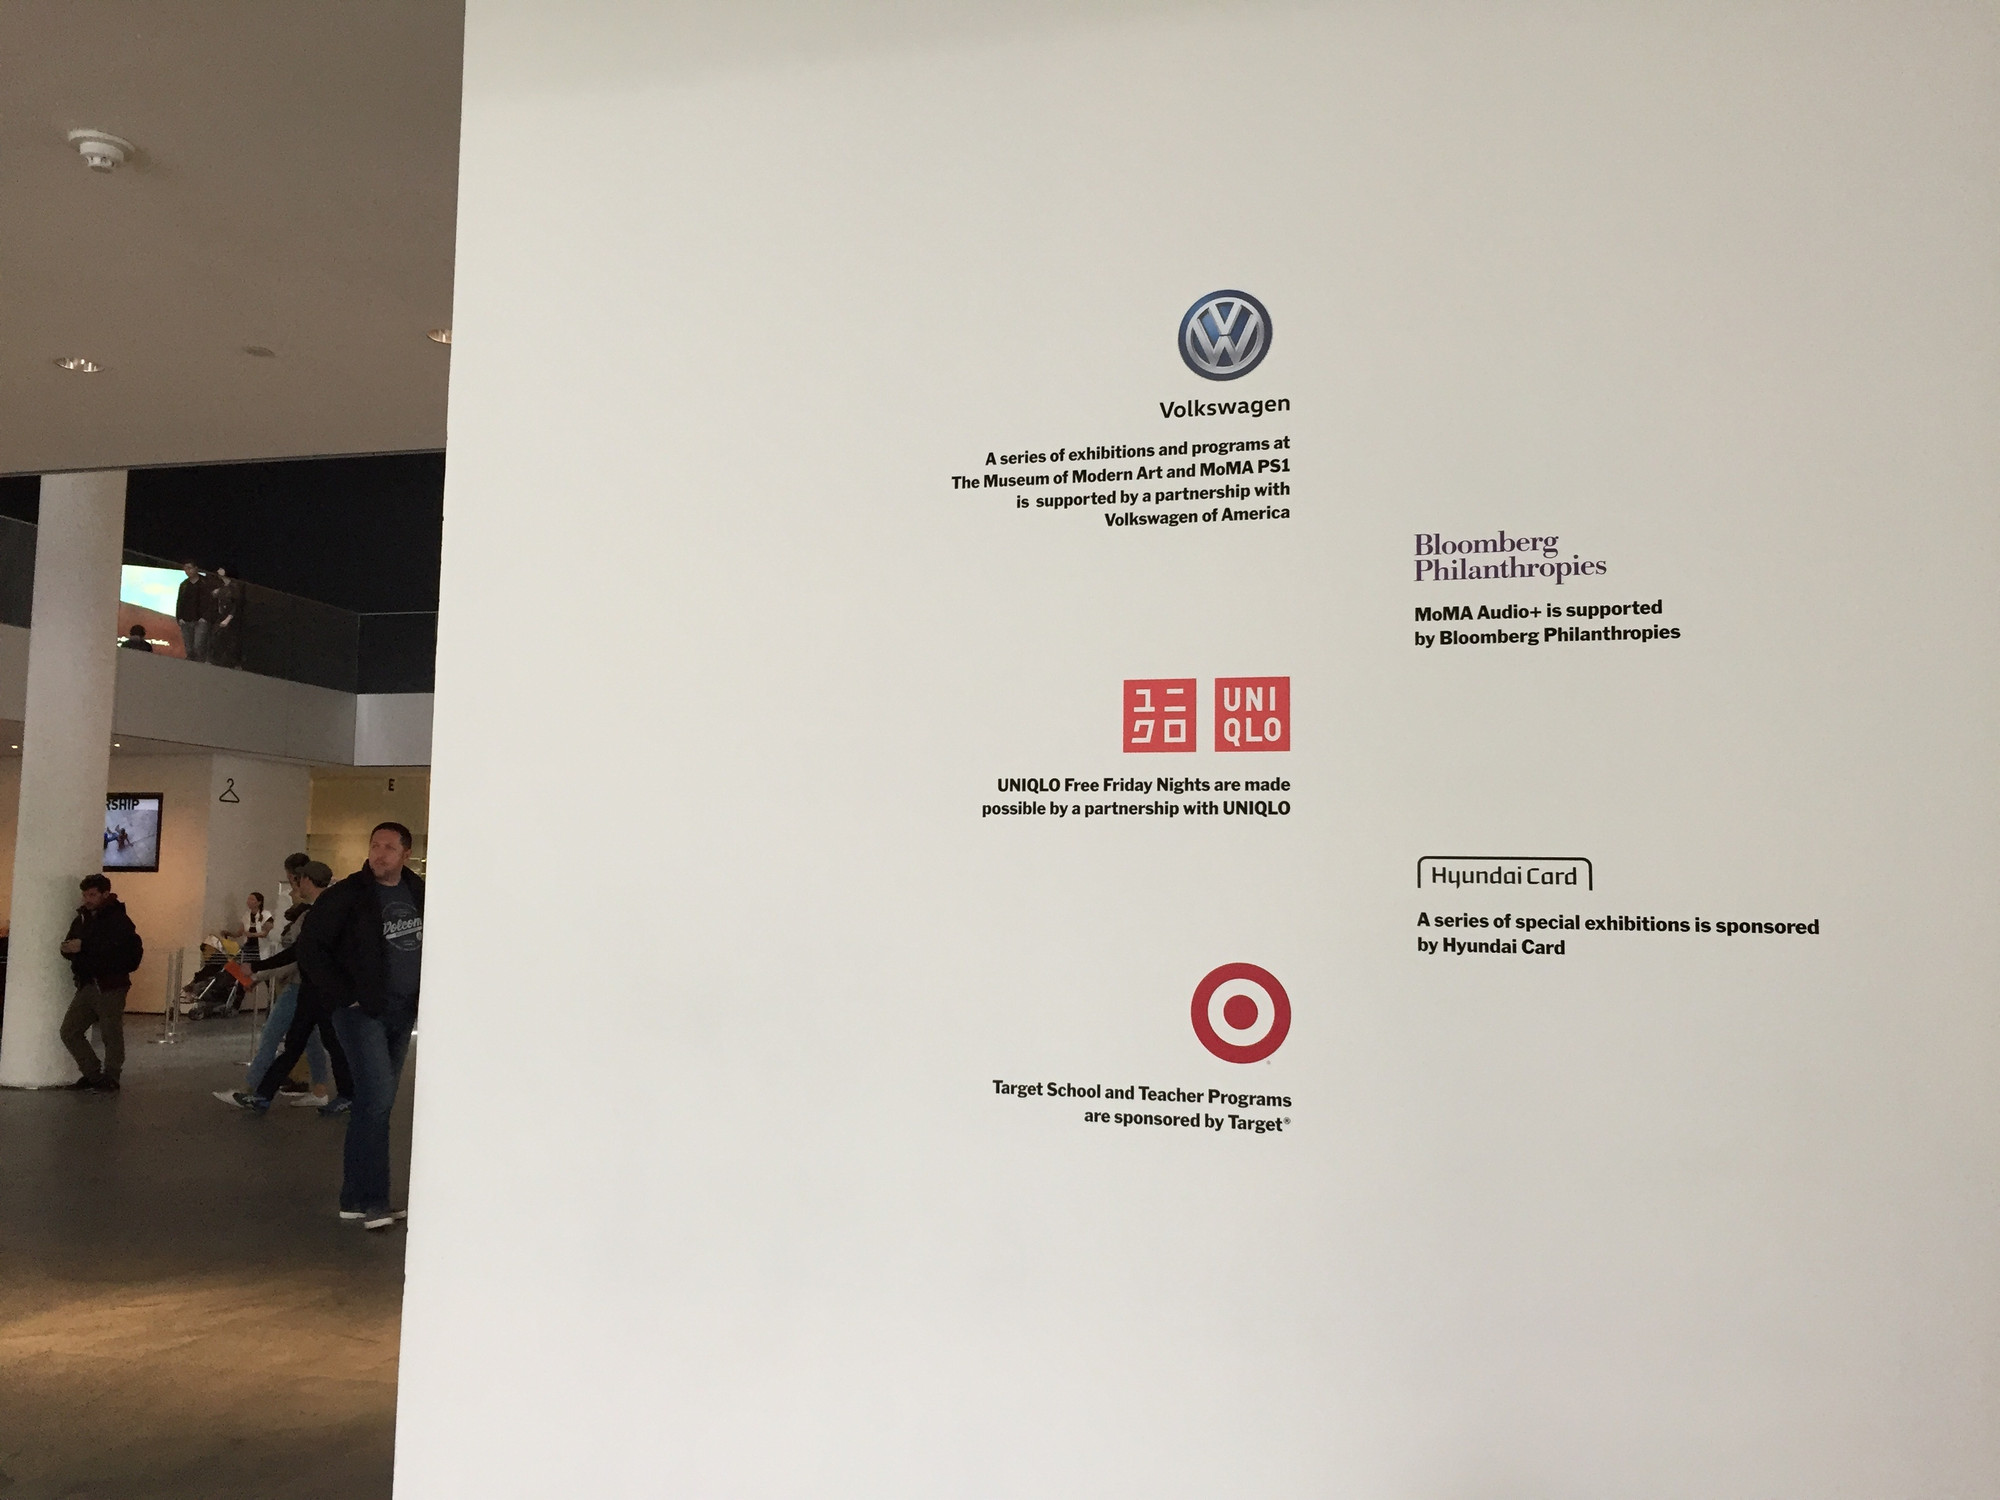 Lobby wall showing logos of multi-year partners